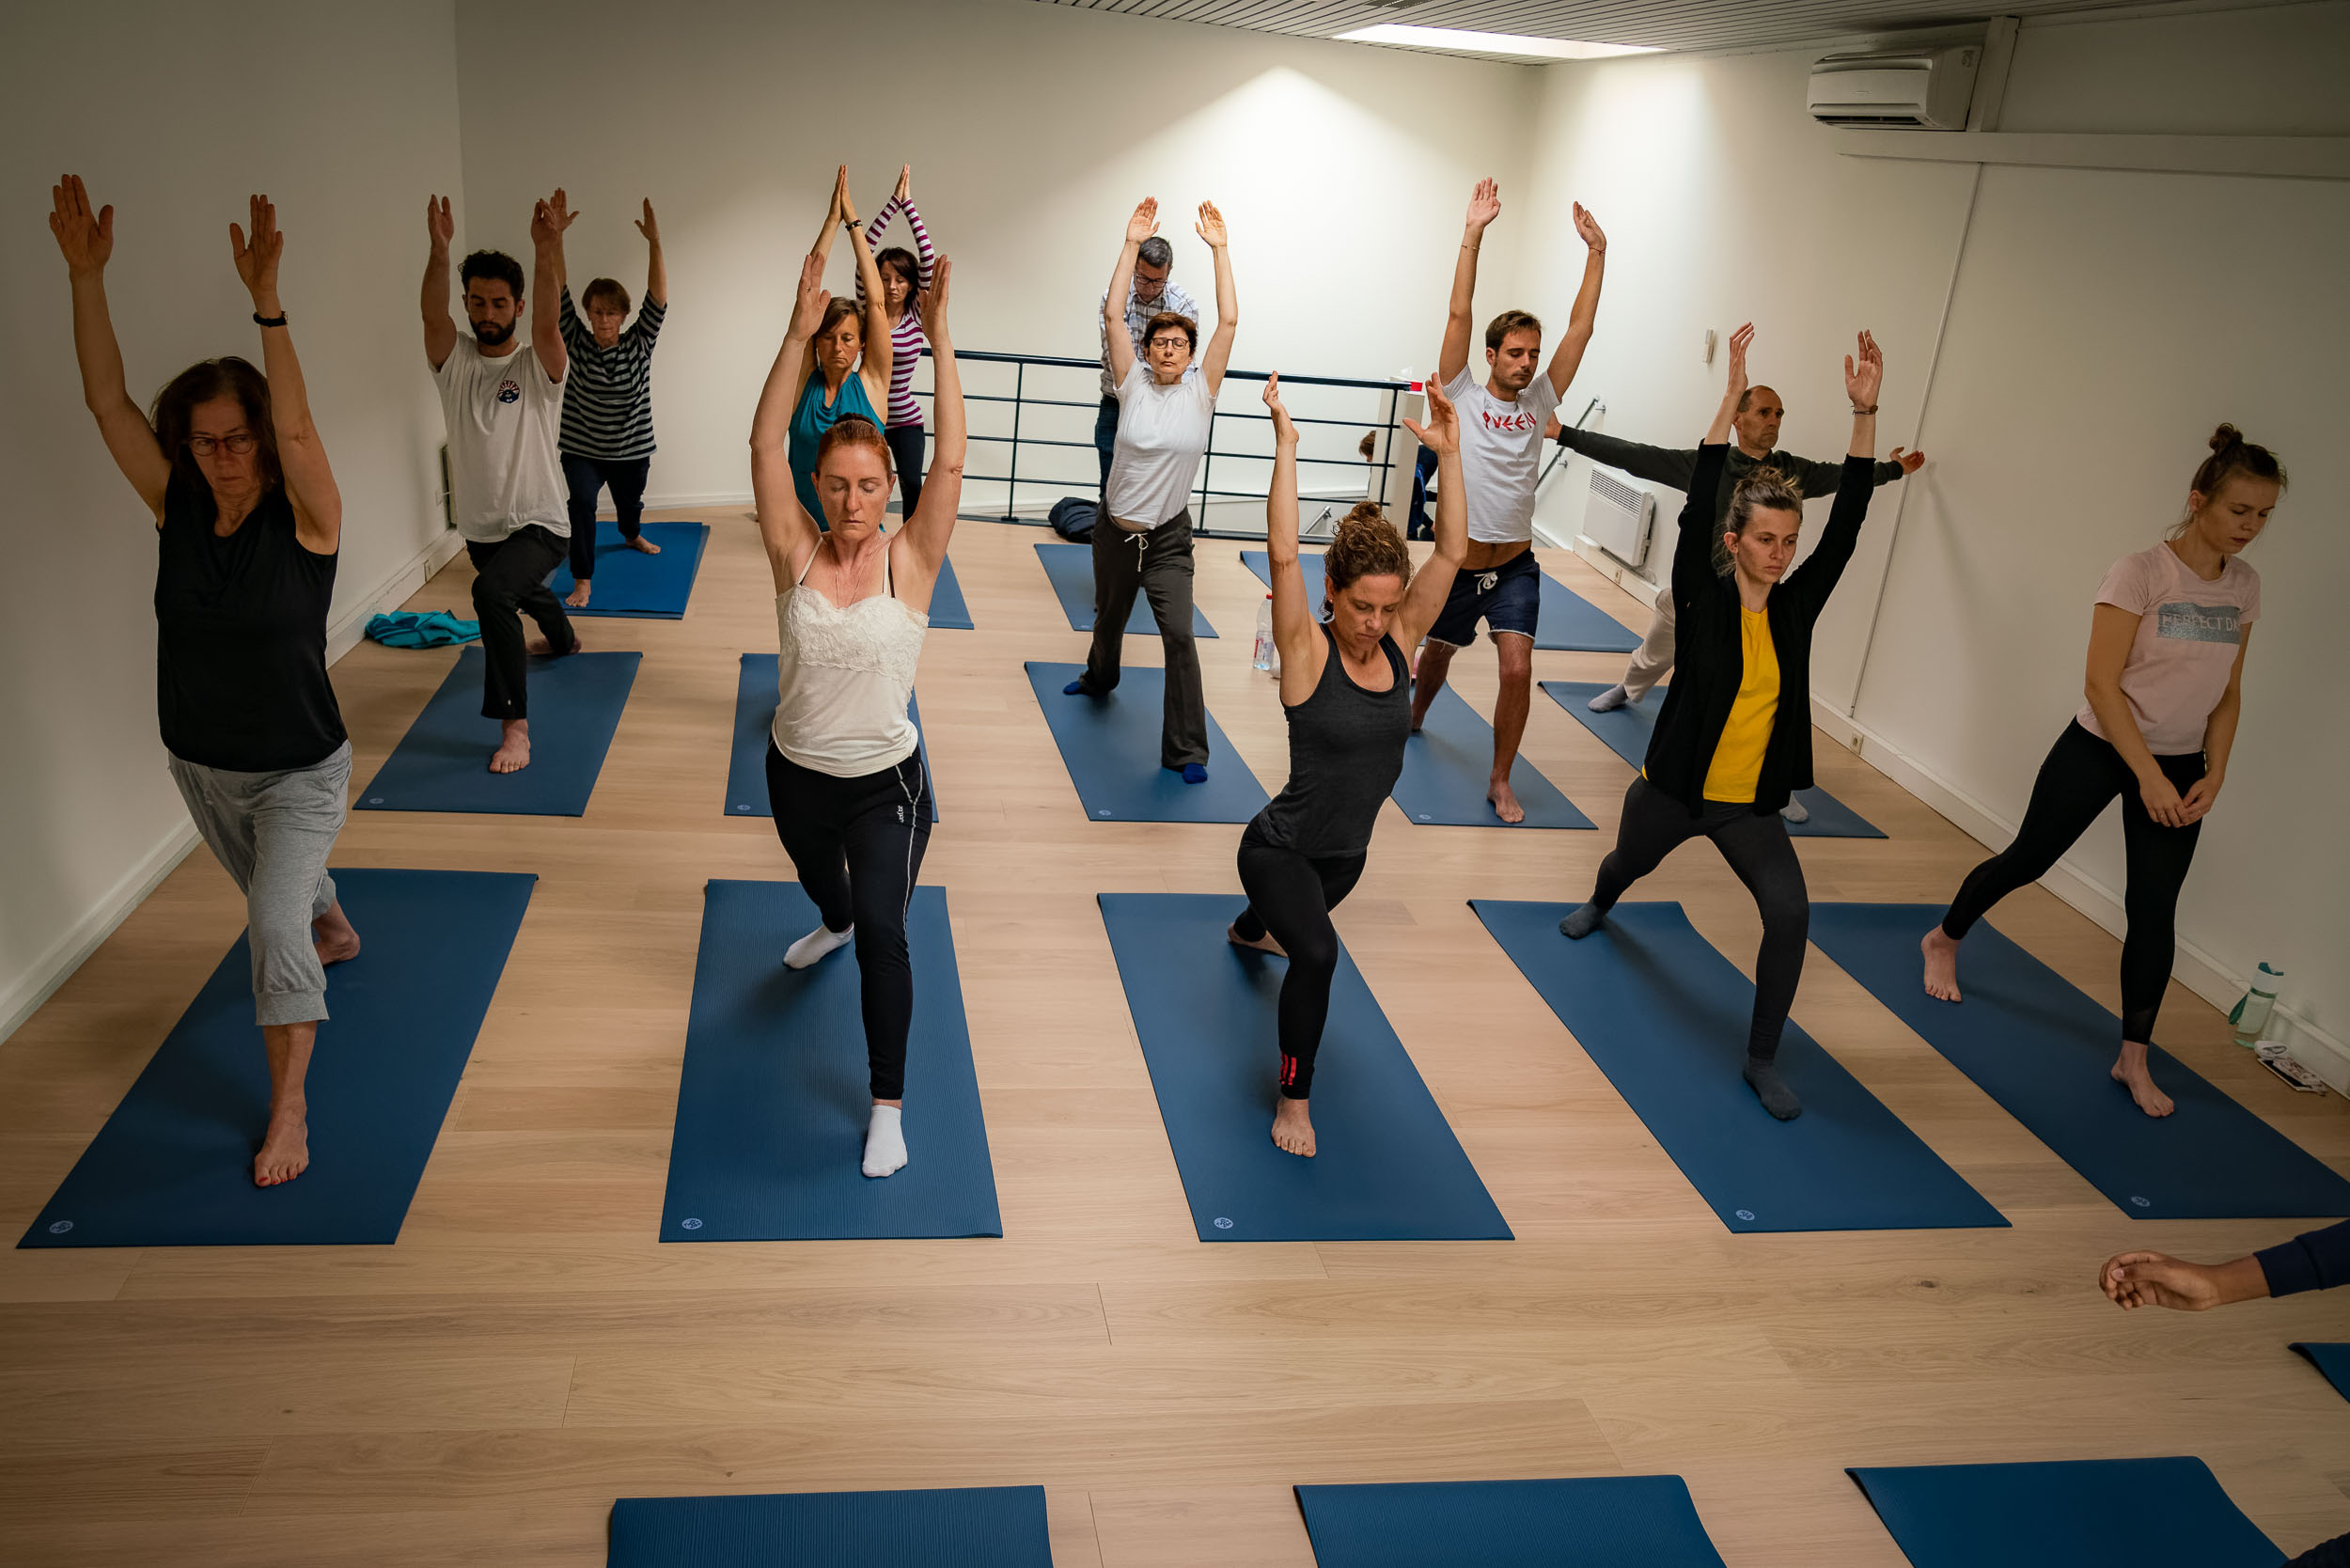 Yoga event in corporate